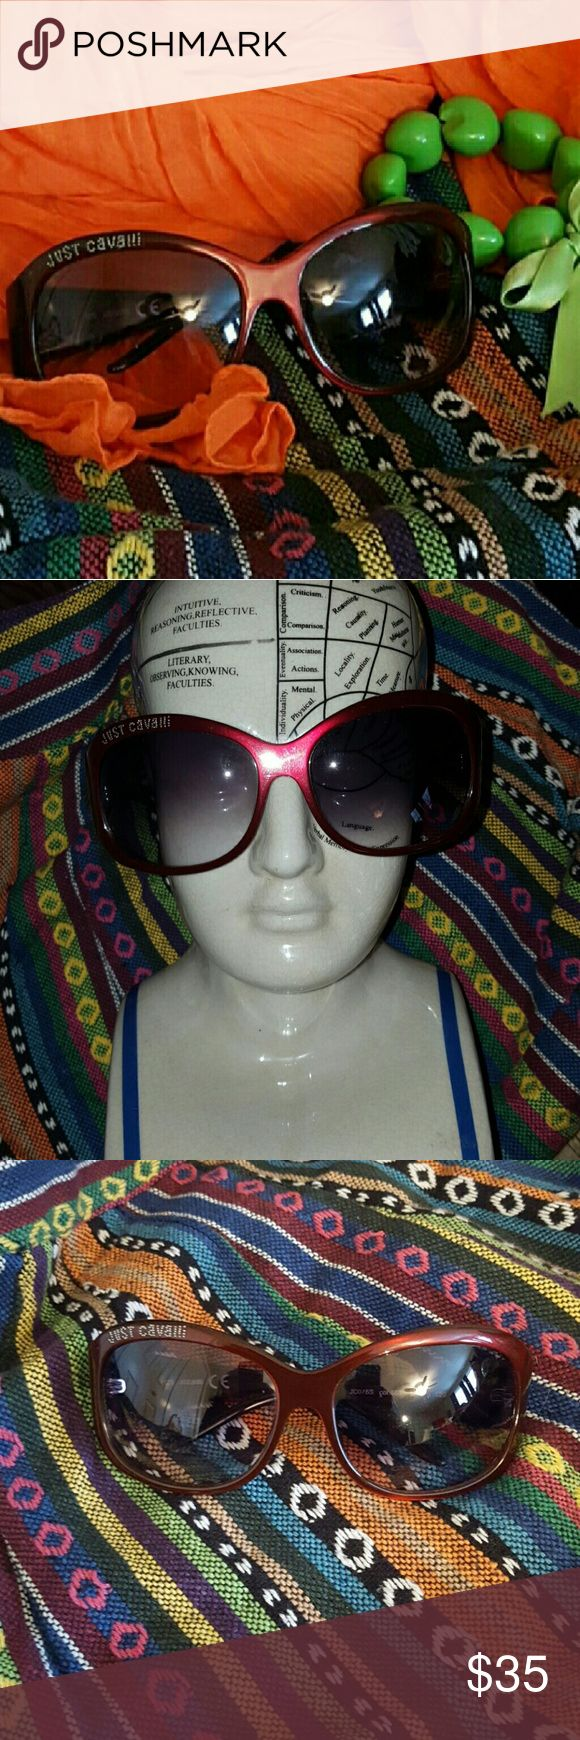 Just Cavalli Sunglasses Maroon JC076s Authentic Just Cavalli Sunglasses JC076s Authentic Maroon W/Rhinestones... These were loved loved loved... Some Scratches but only see when hold up to a lamp... Not Visible when wearing... You can see from Photos... Bought at Neiman's Last Call... Have a Case but I purchased that separate from... No Trades Just Cavalli Accessories Sunglasses